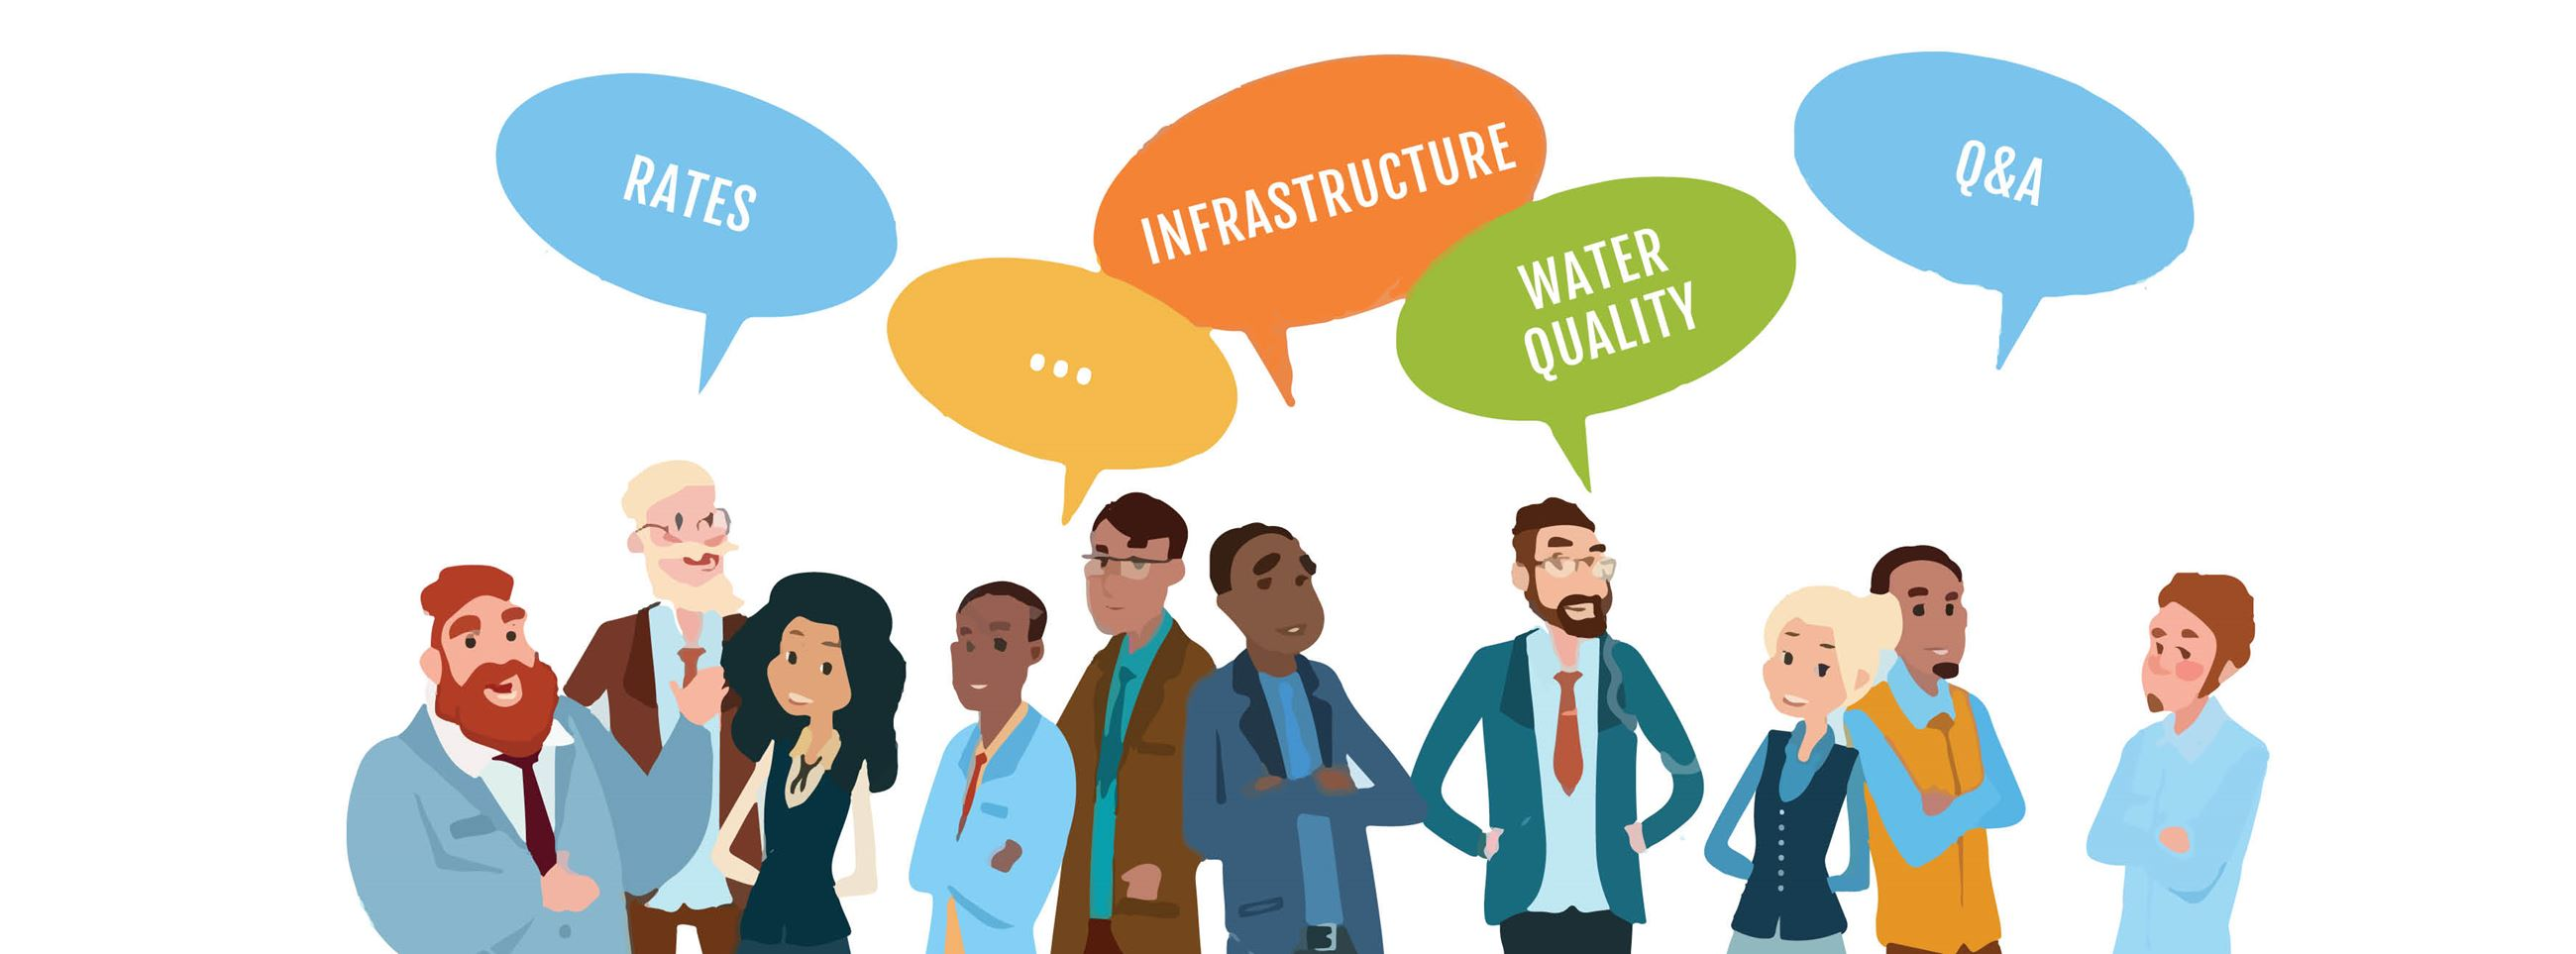 CommunityConversations